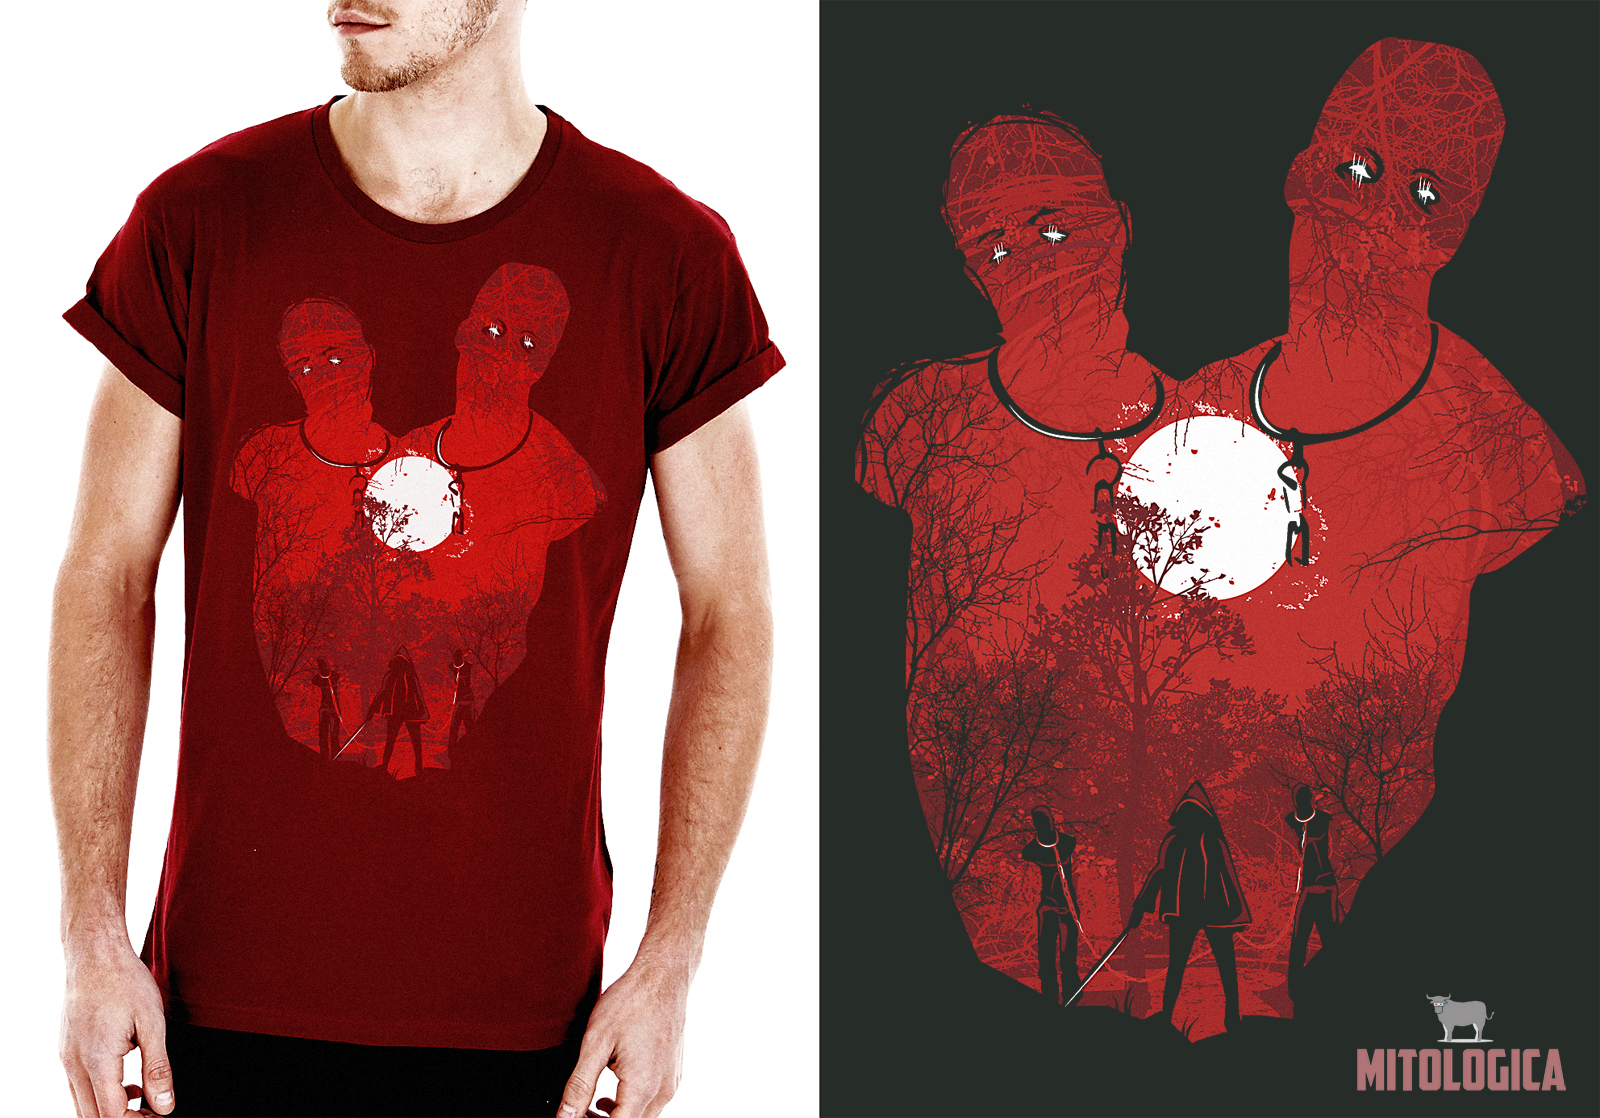 Shirt design red - Michonne T Shirt Design Updated By Spiderboo